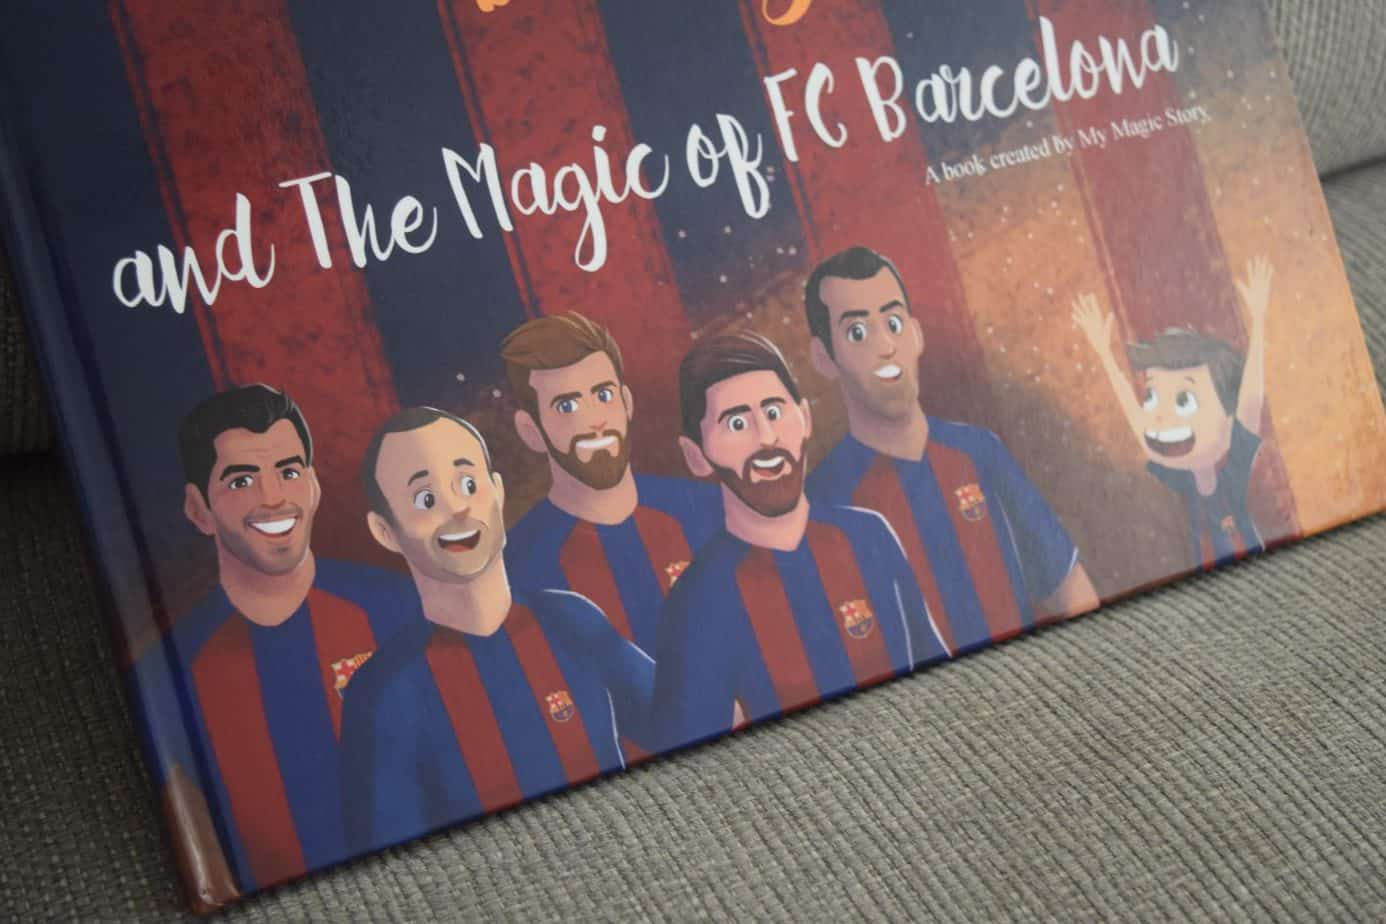 7917331ee The personalised football book on Barcelona FC from The Magic Story